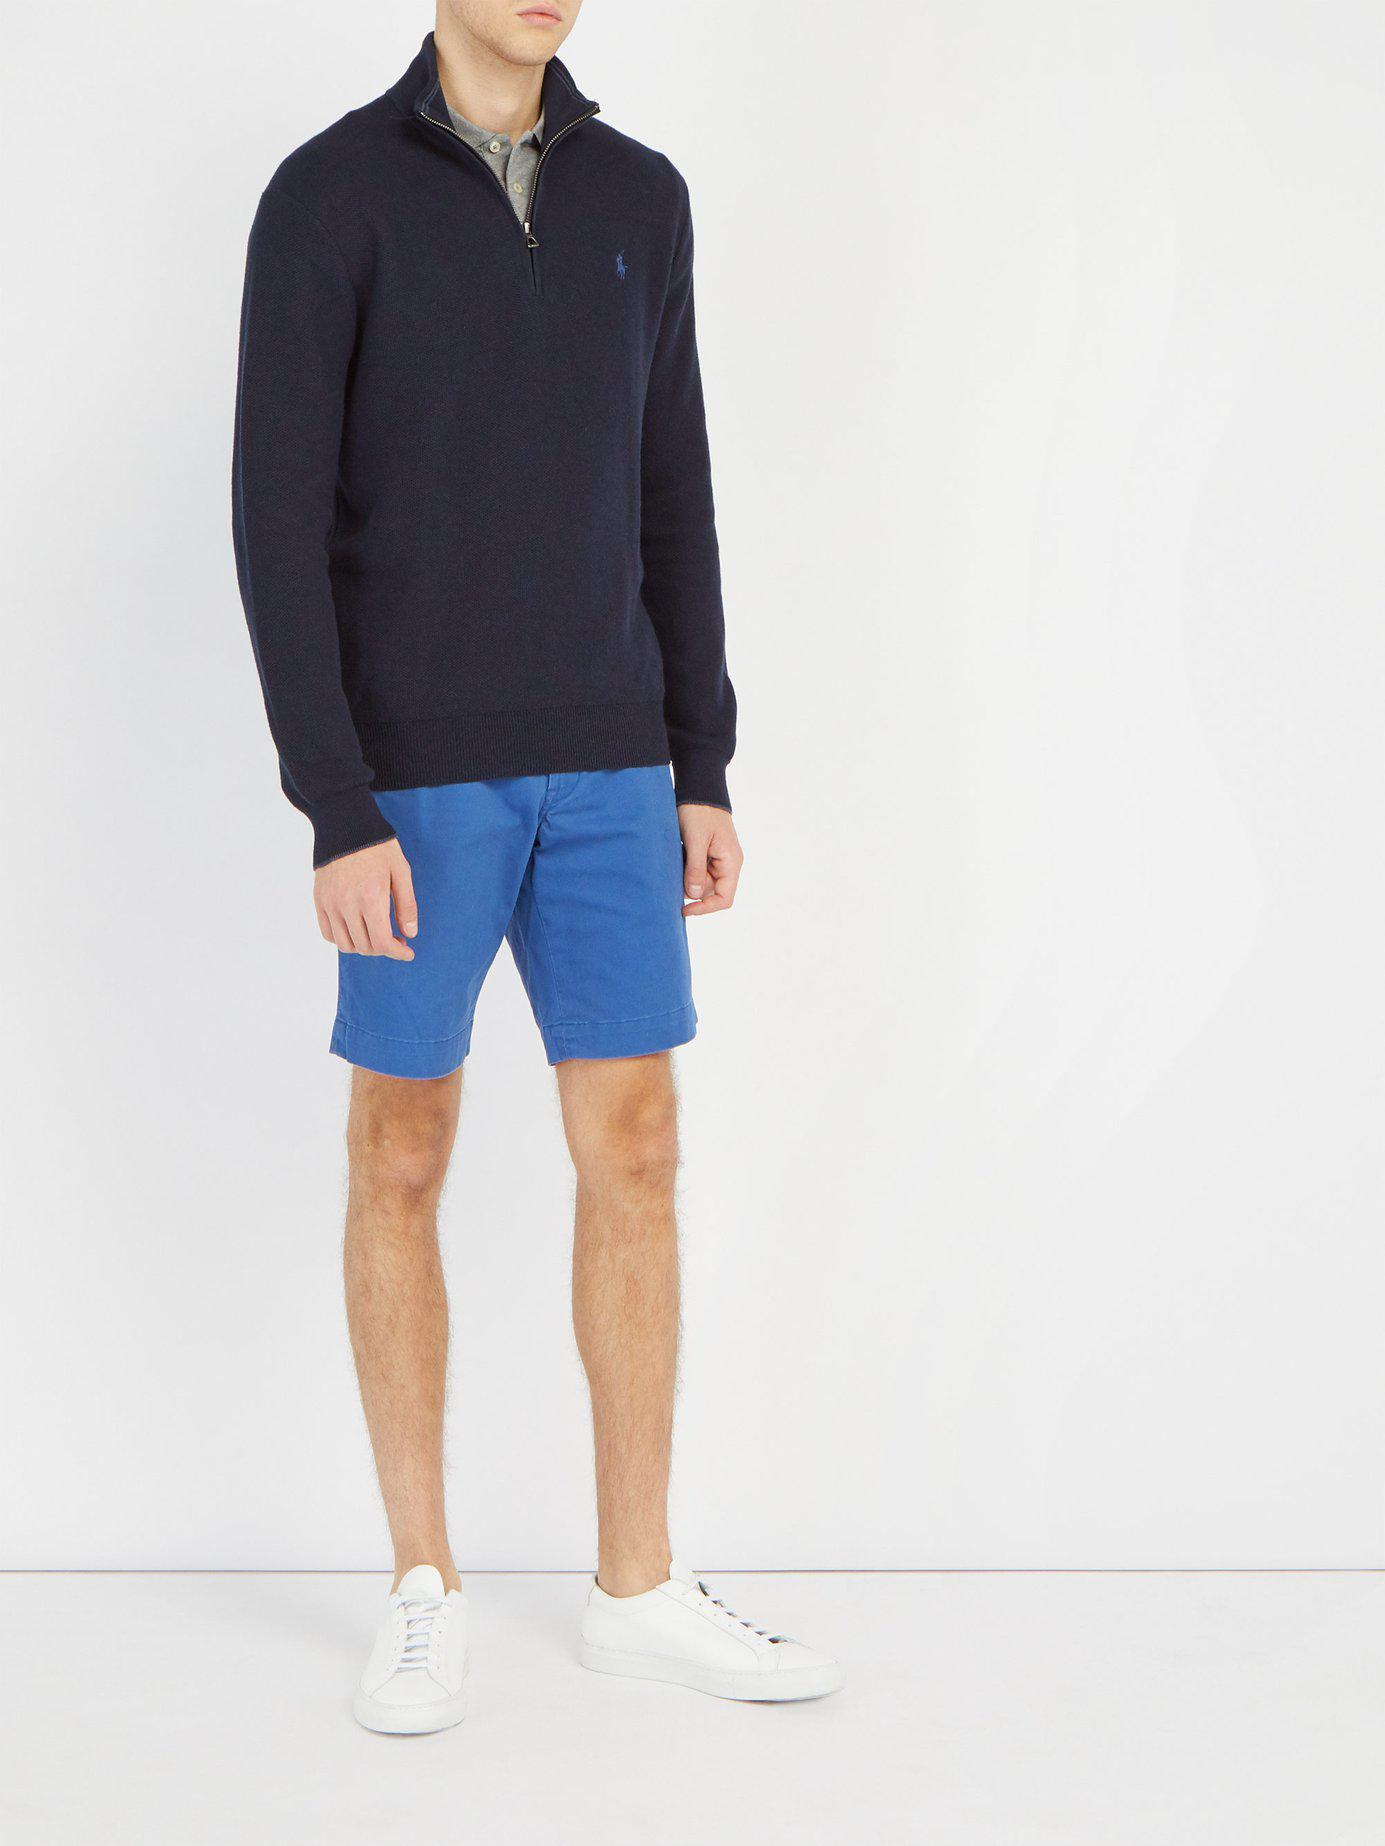 341989db4 Lyst - Polo Ralph Lauren Tailored Cotton Blend Chino Shorts in Blue for Men